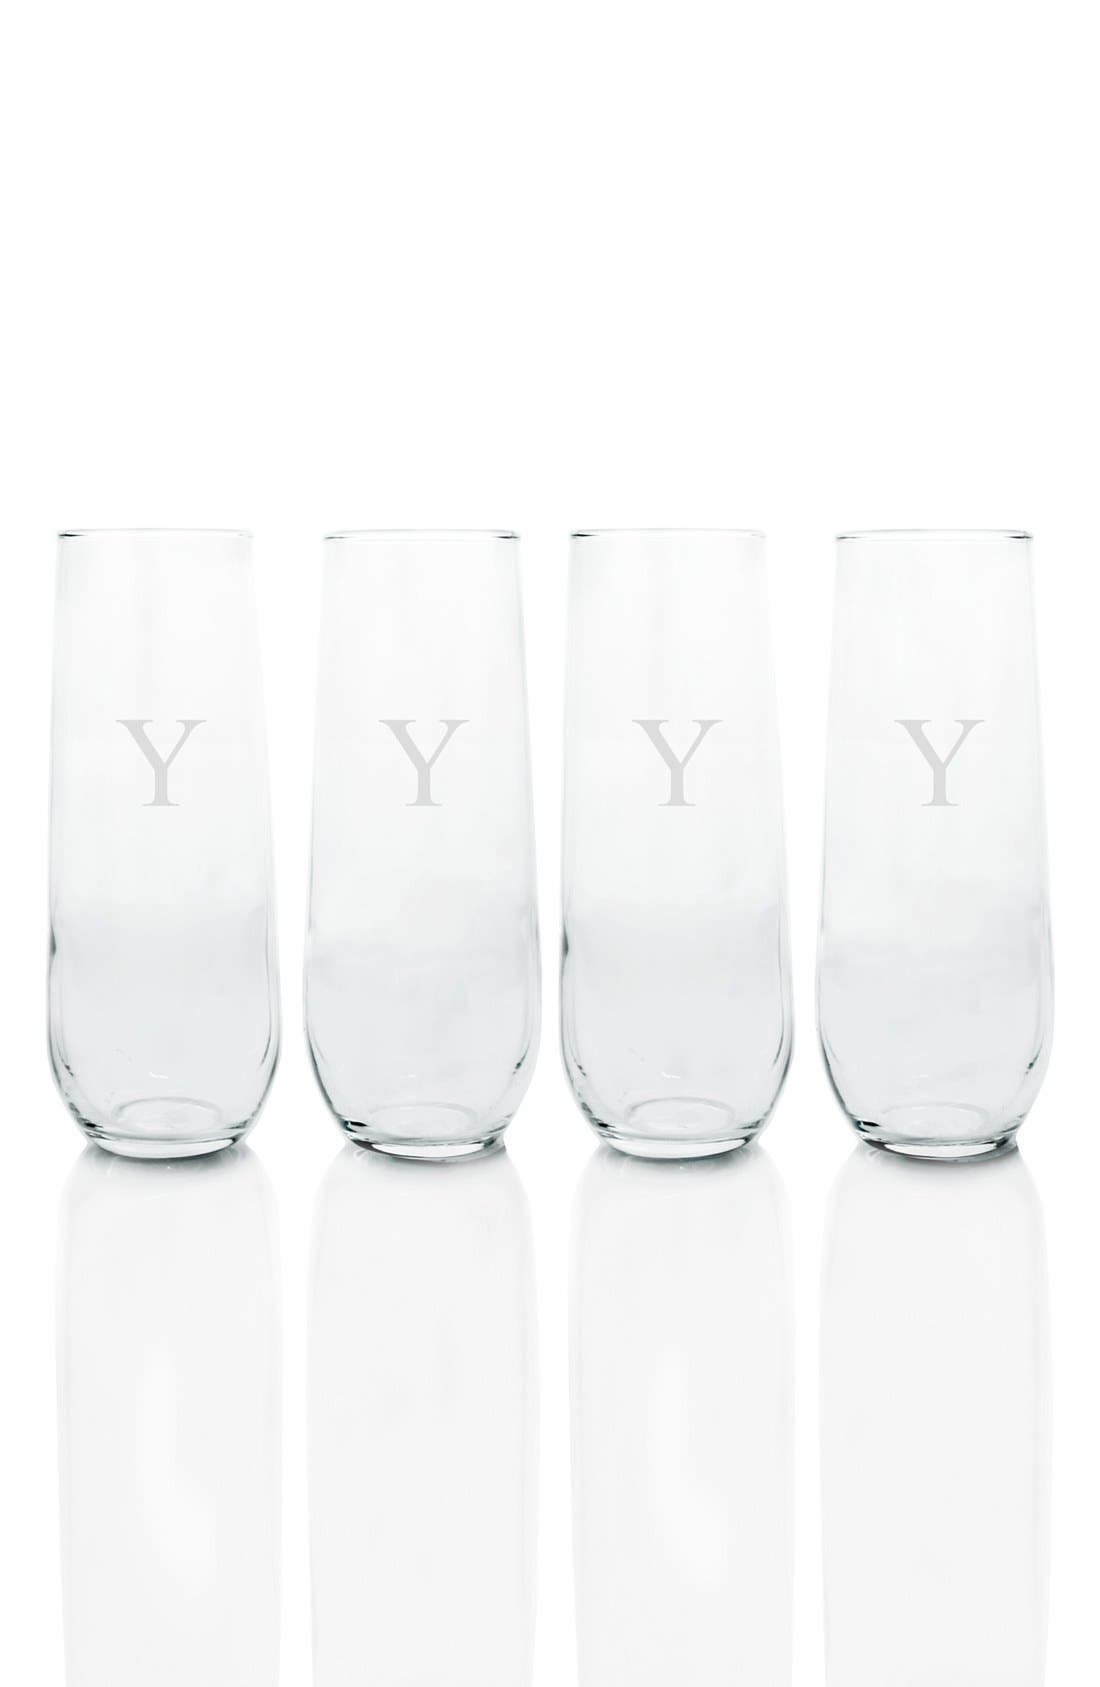 Monogram Stemless Champagne Flutes,                             Main thumbnail 1, color,                             Y